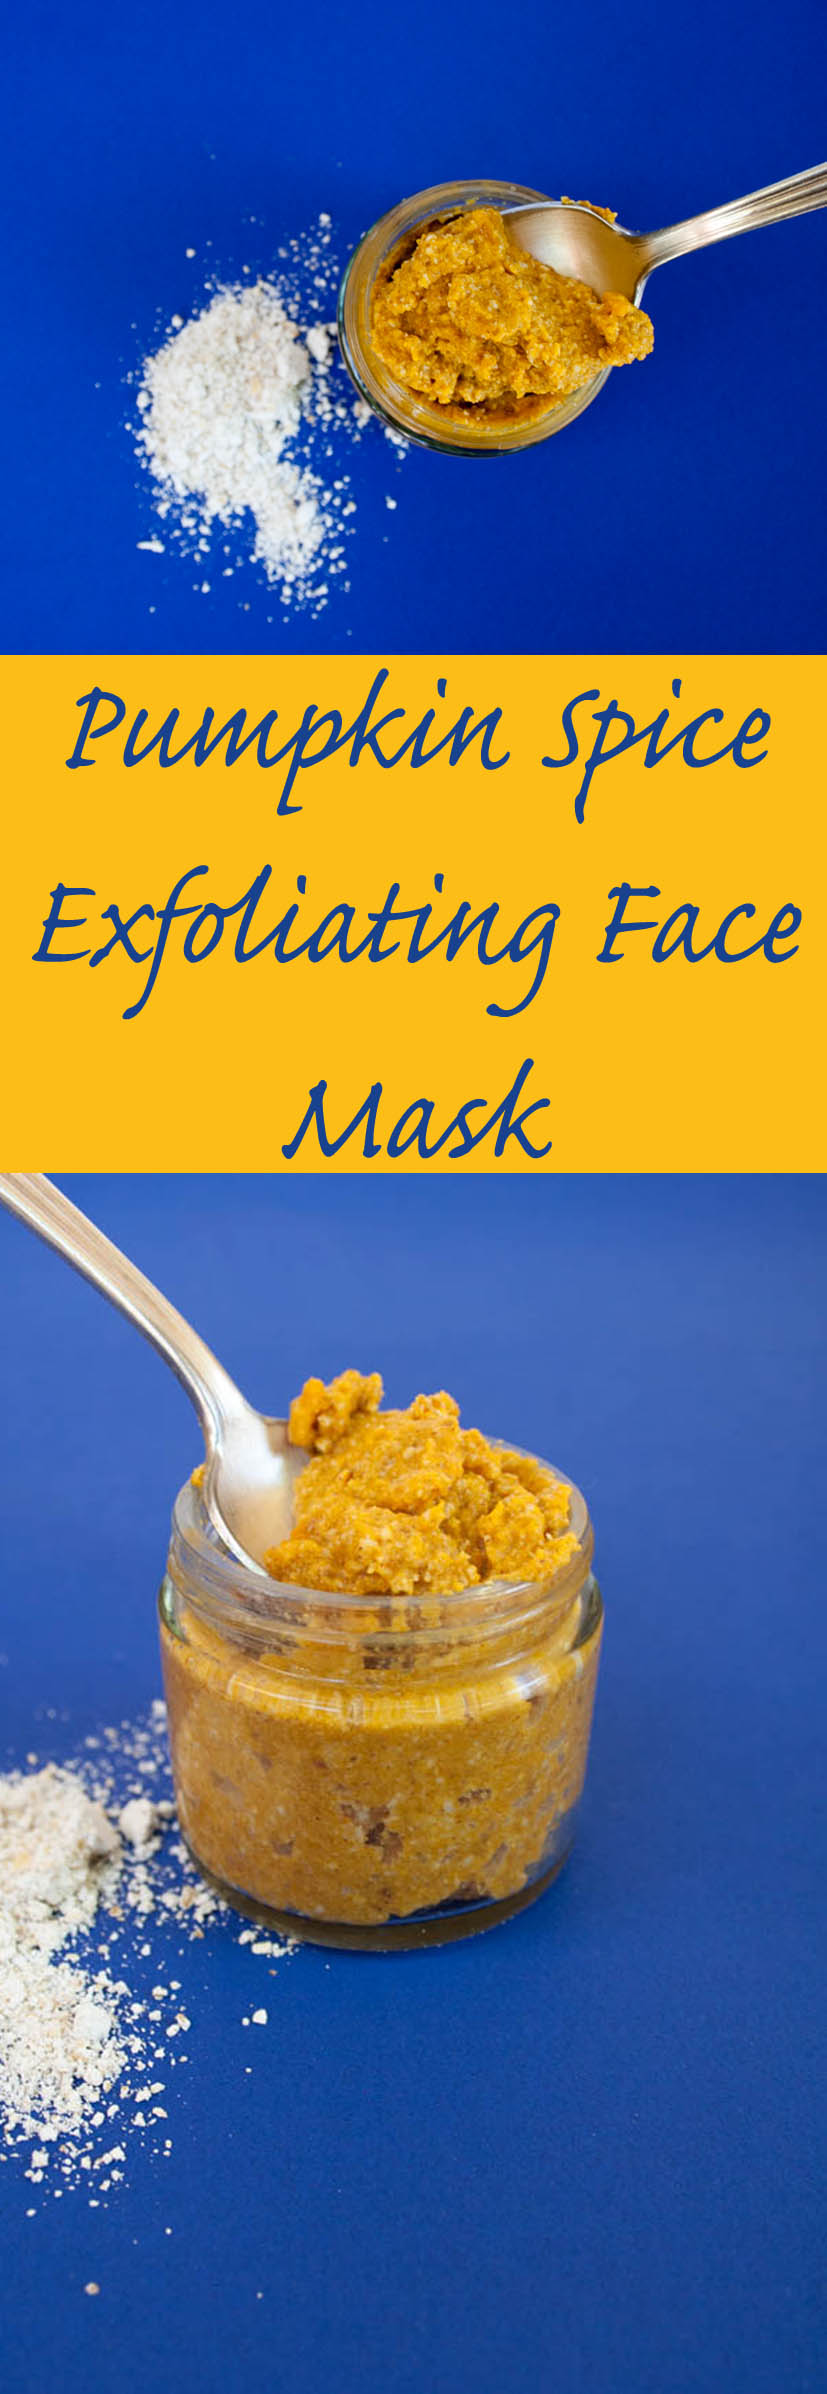 Pumpkin Spice Exfoliating Face Mask (vegan, gluten free) - This mask is a perfect way to use up that last tablespoon (or more) of pumpkin puree.